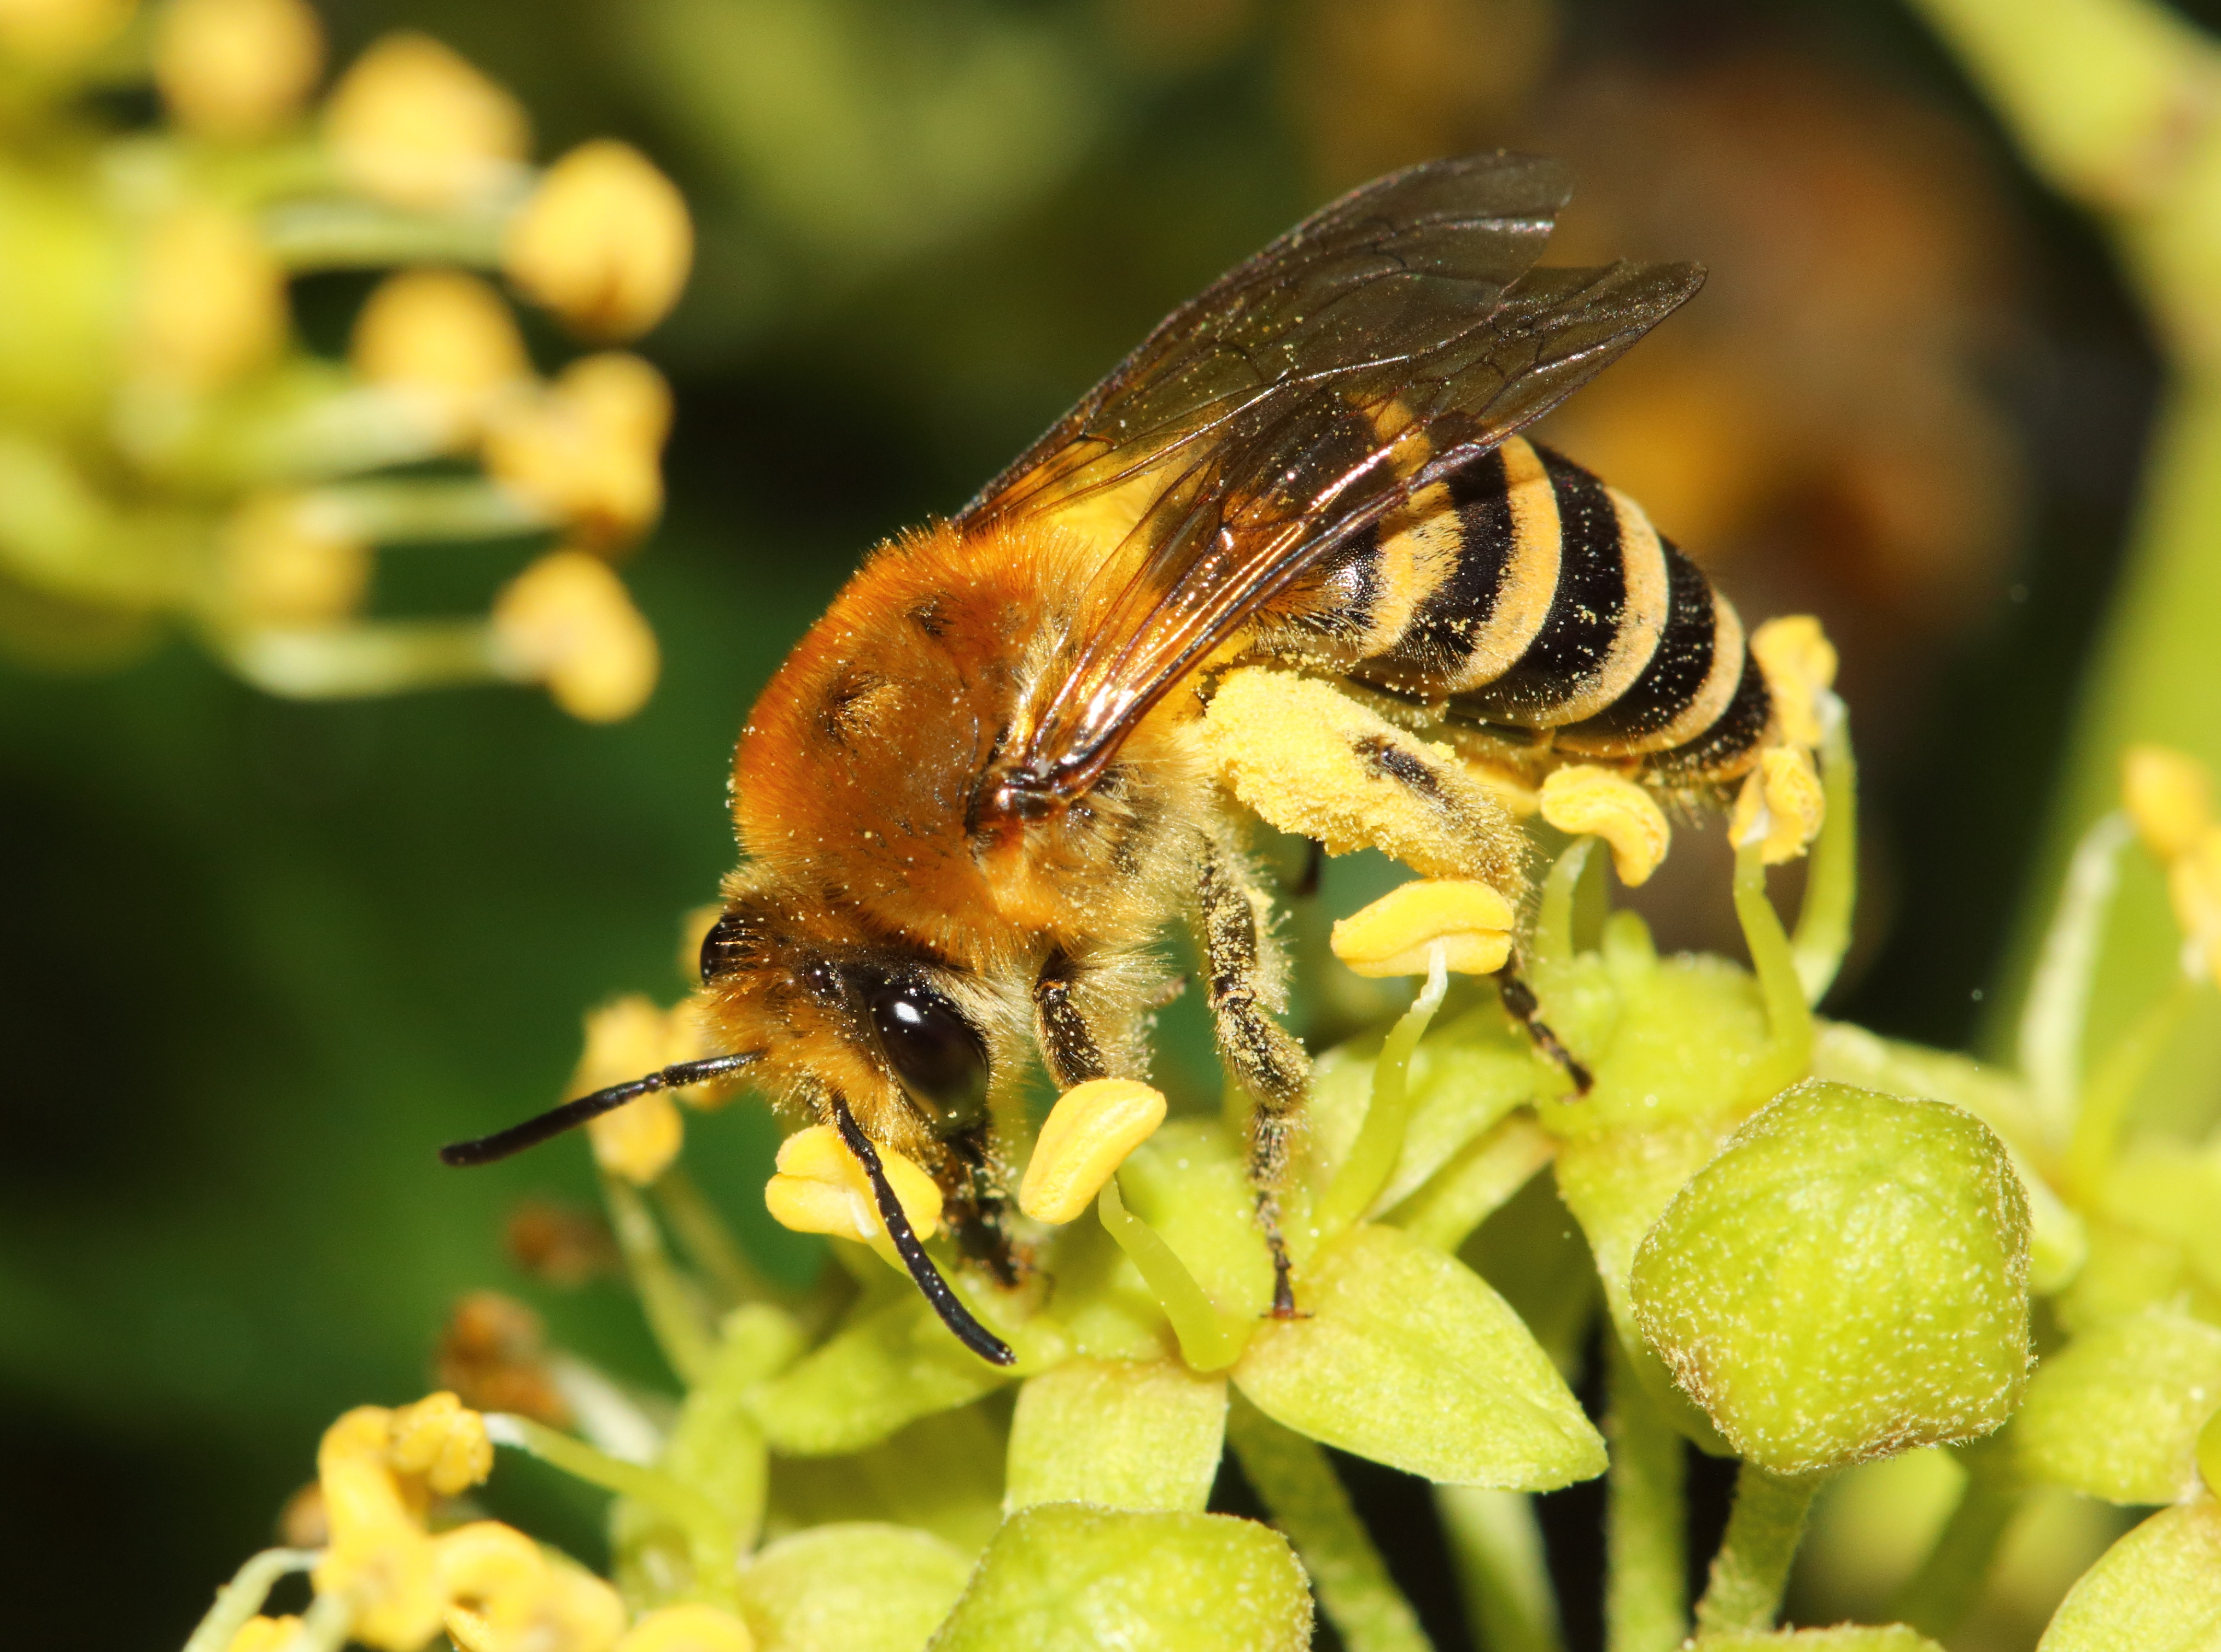 Ivy bees, Colletes hederae (female) in Kew Gardens